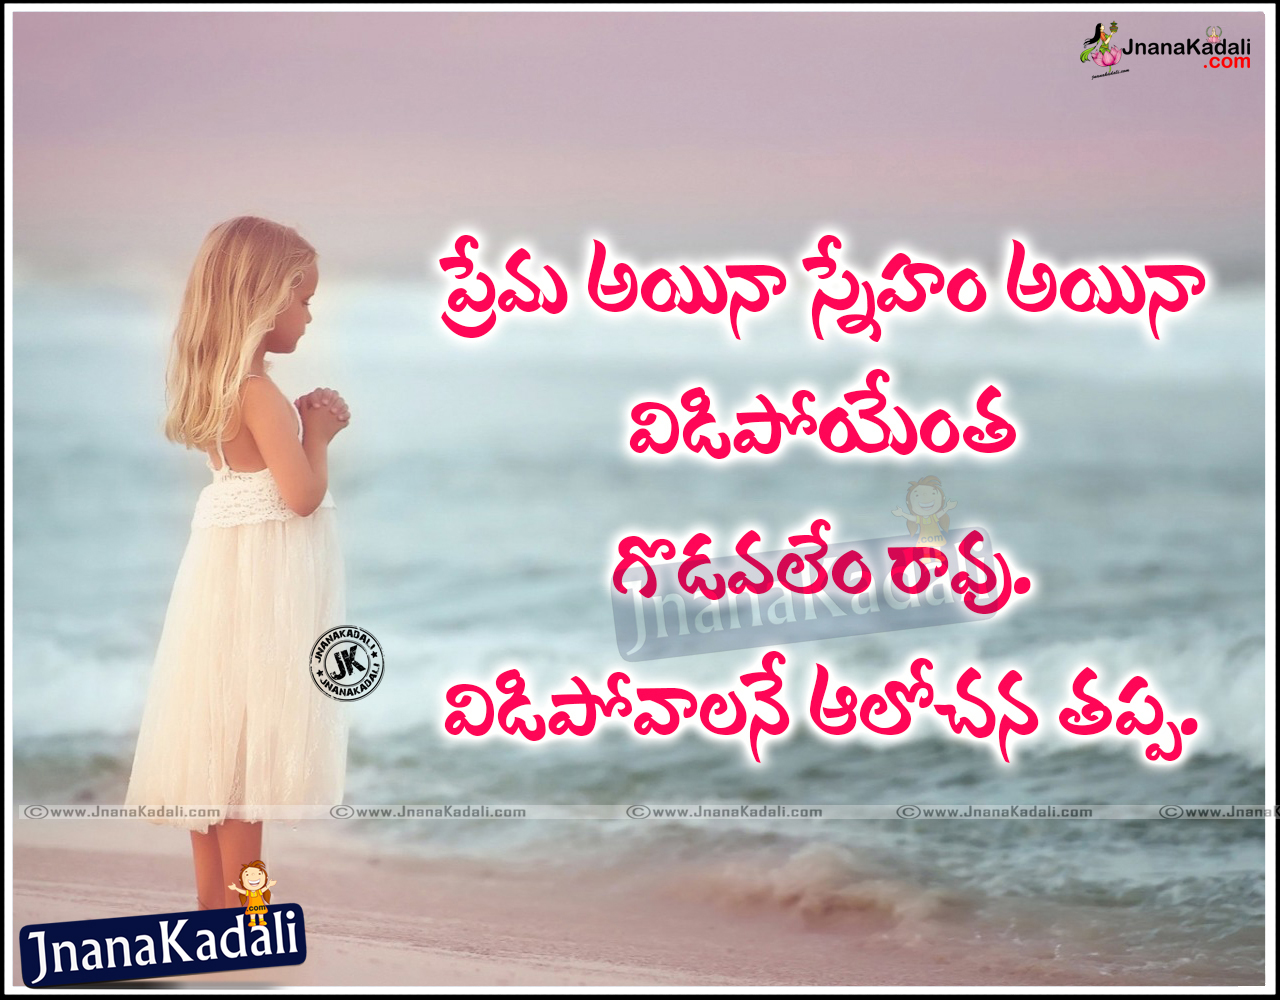 Love Quotes Love Meaning In Love Quotes In Jnana Kadali